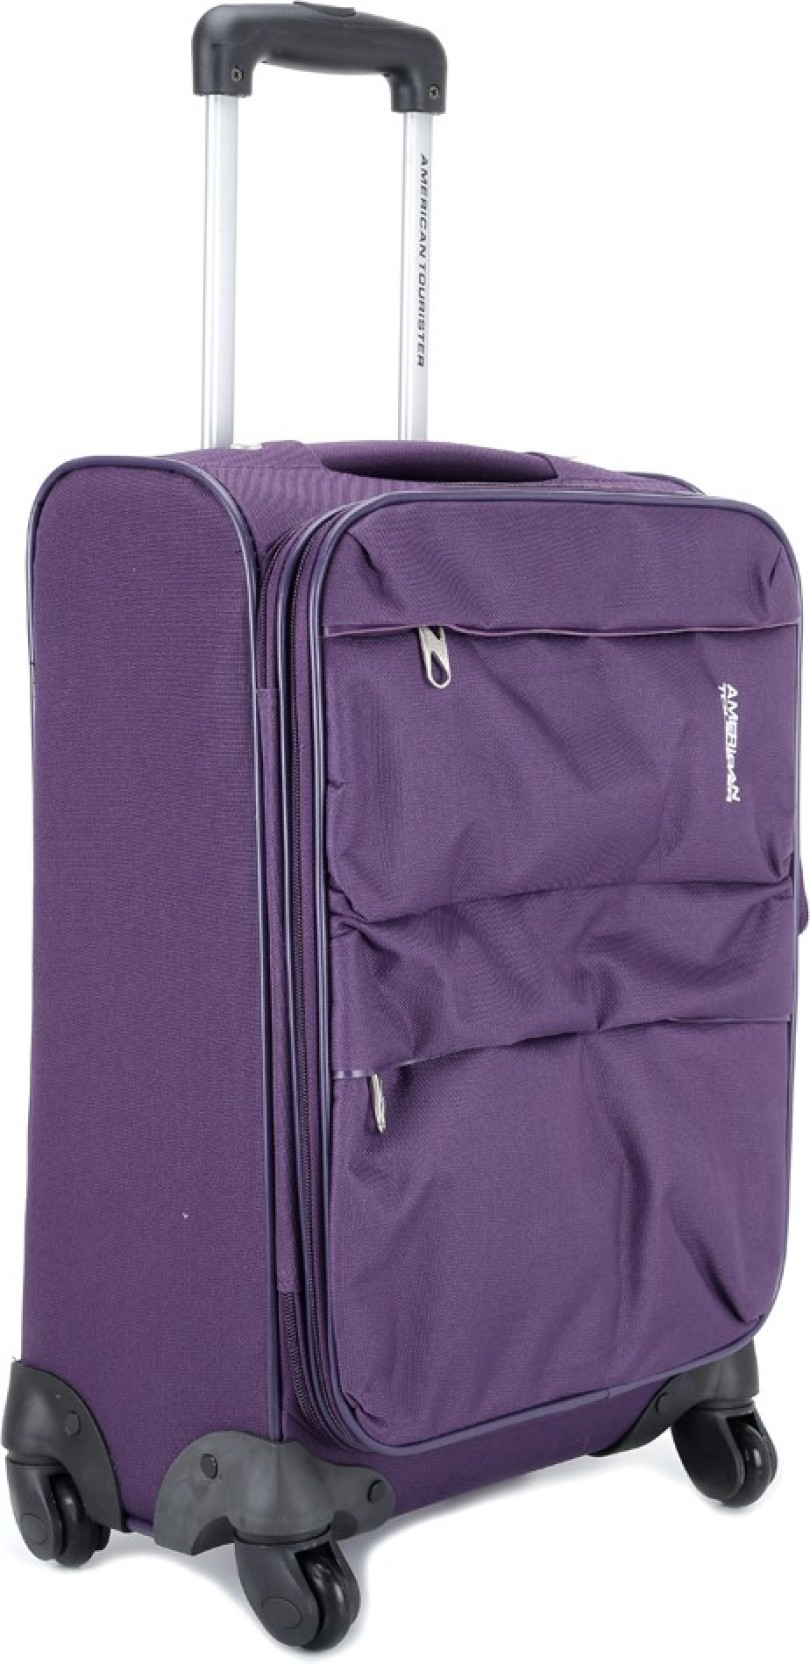 American Tourister Velocity Expandable Cabin Luggage 21